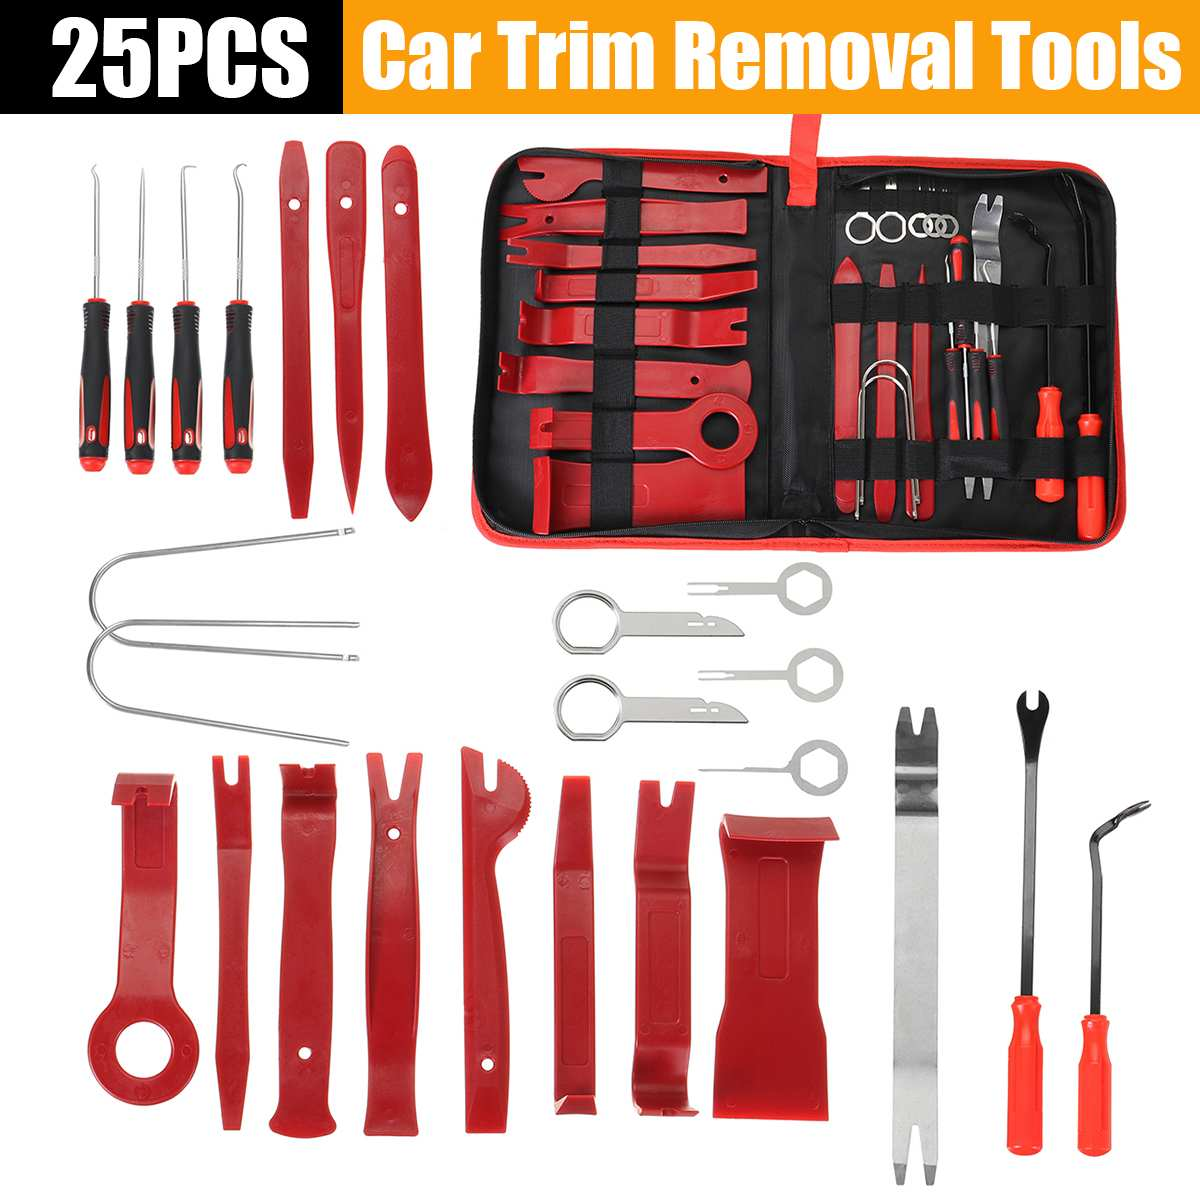 25pcs Car Disassembly Tools DVD Stereo Refit Kits Interior Plastic Trim Panel Dashboard Installation Removal Repair Tools